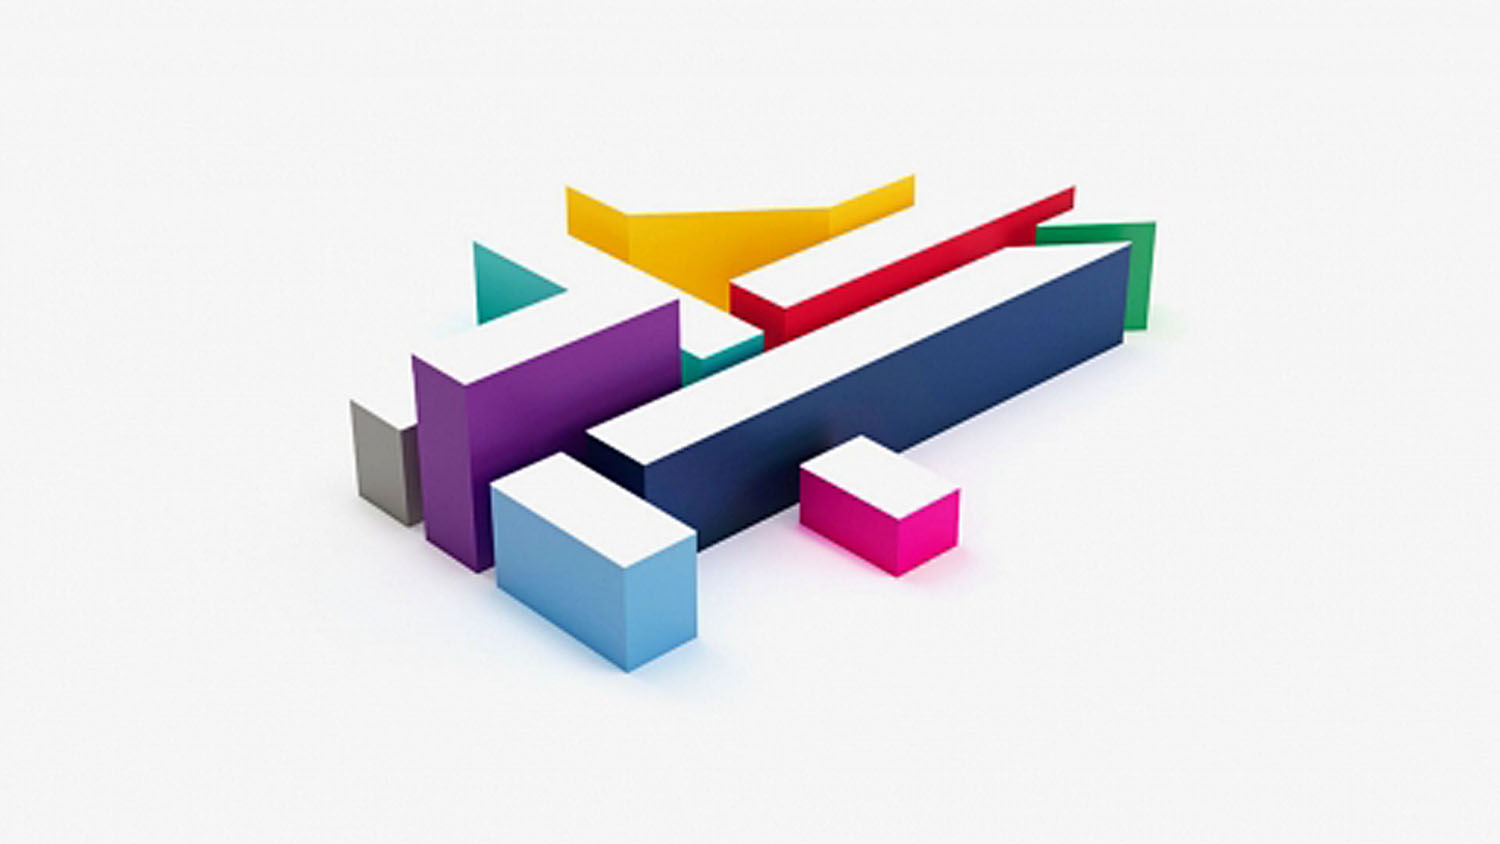 C4 tackles LGBT representation in ads with £1m award